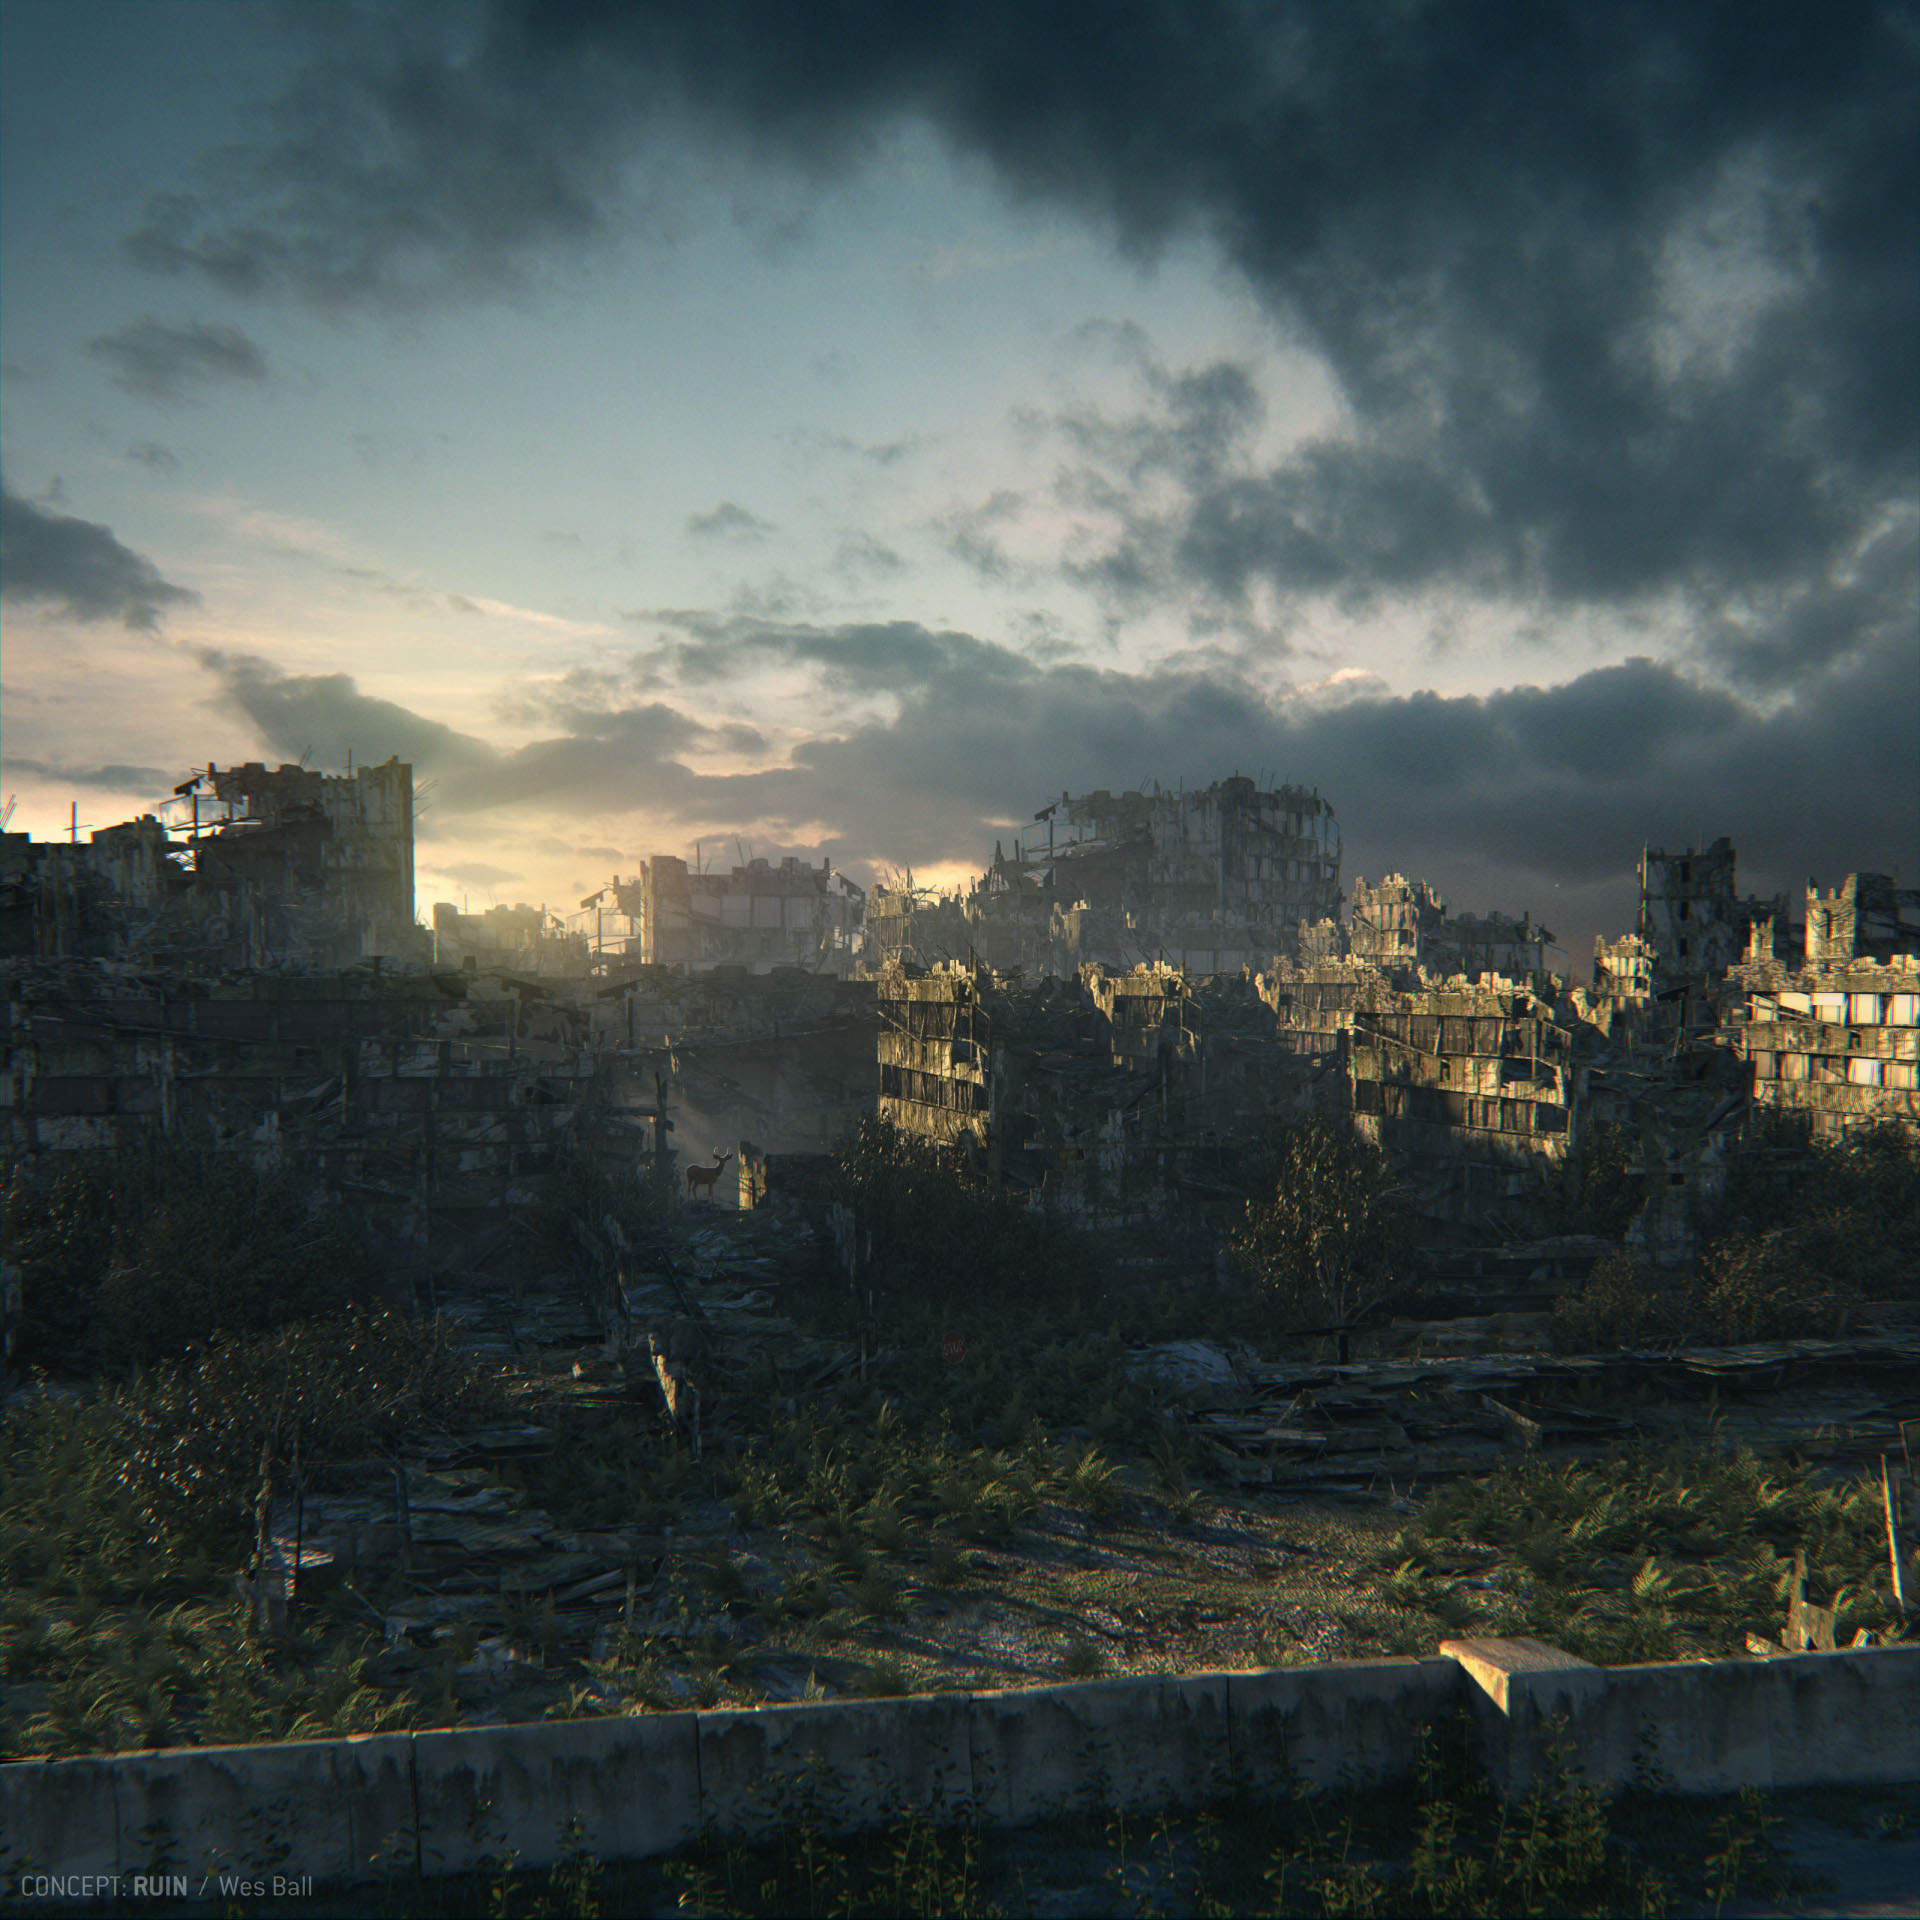 City Ruins at Dusk 3D Sci fi VideoCoolvibe Digital Art